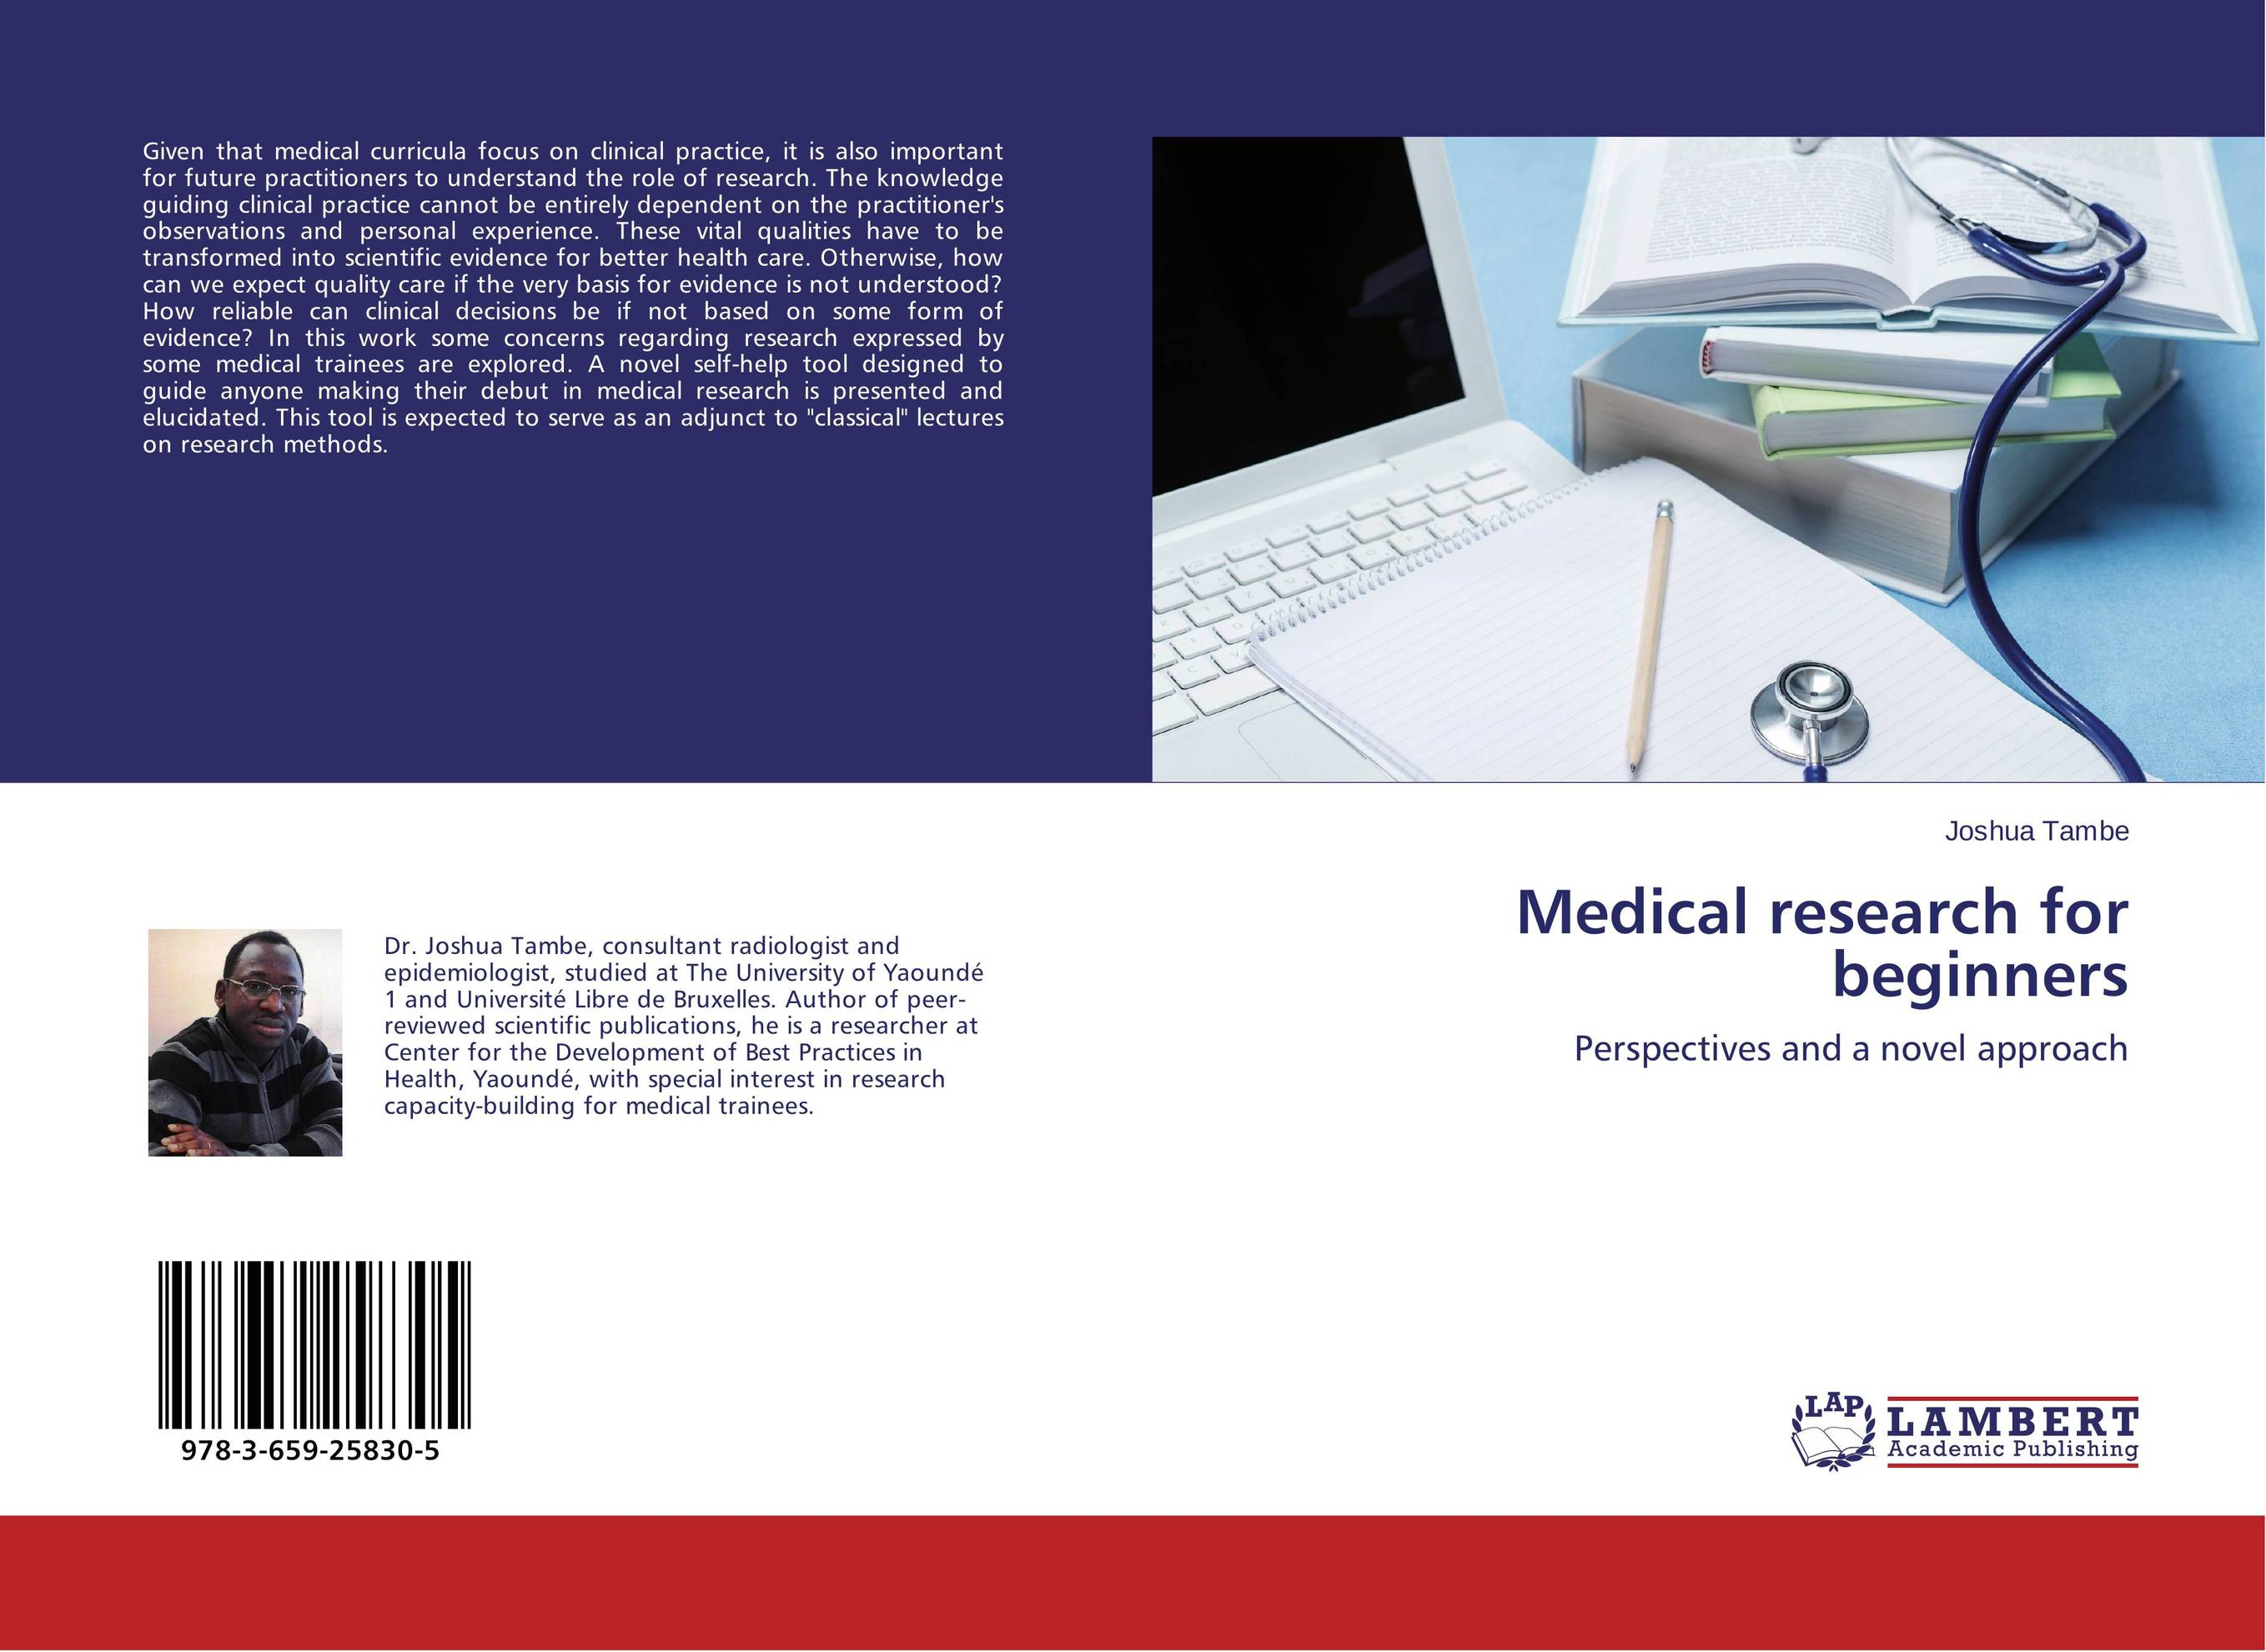 Medical research for beginners the role of evaluation as a mechanism for advancing principal practice